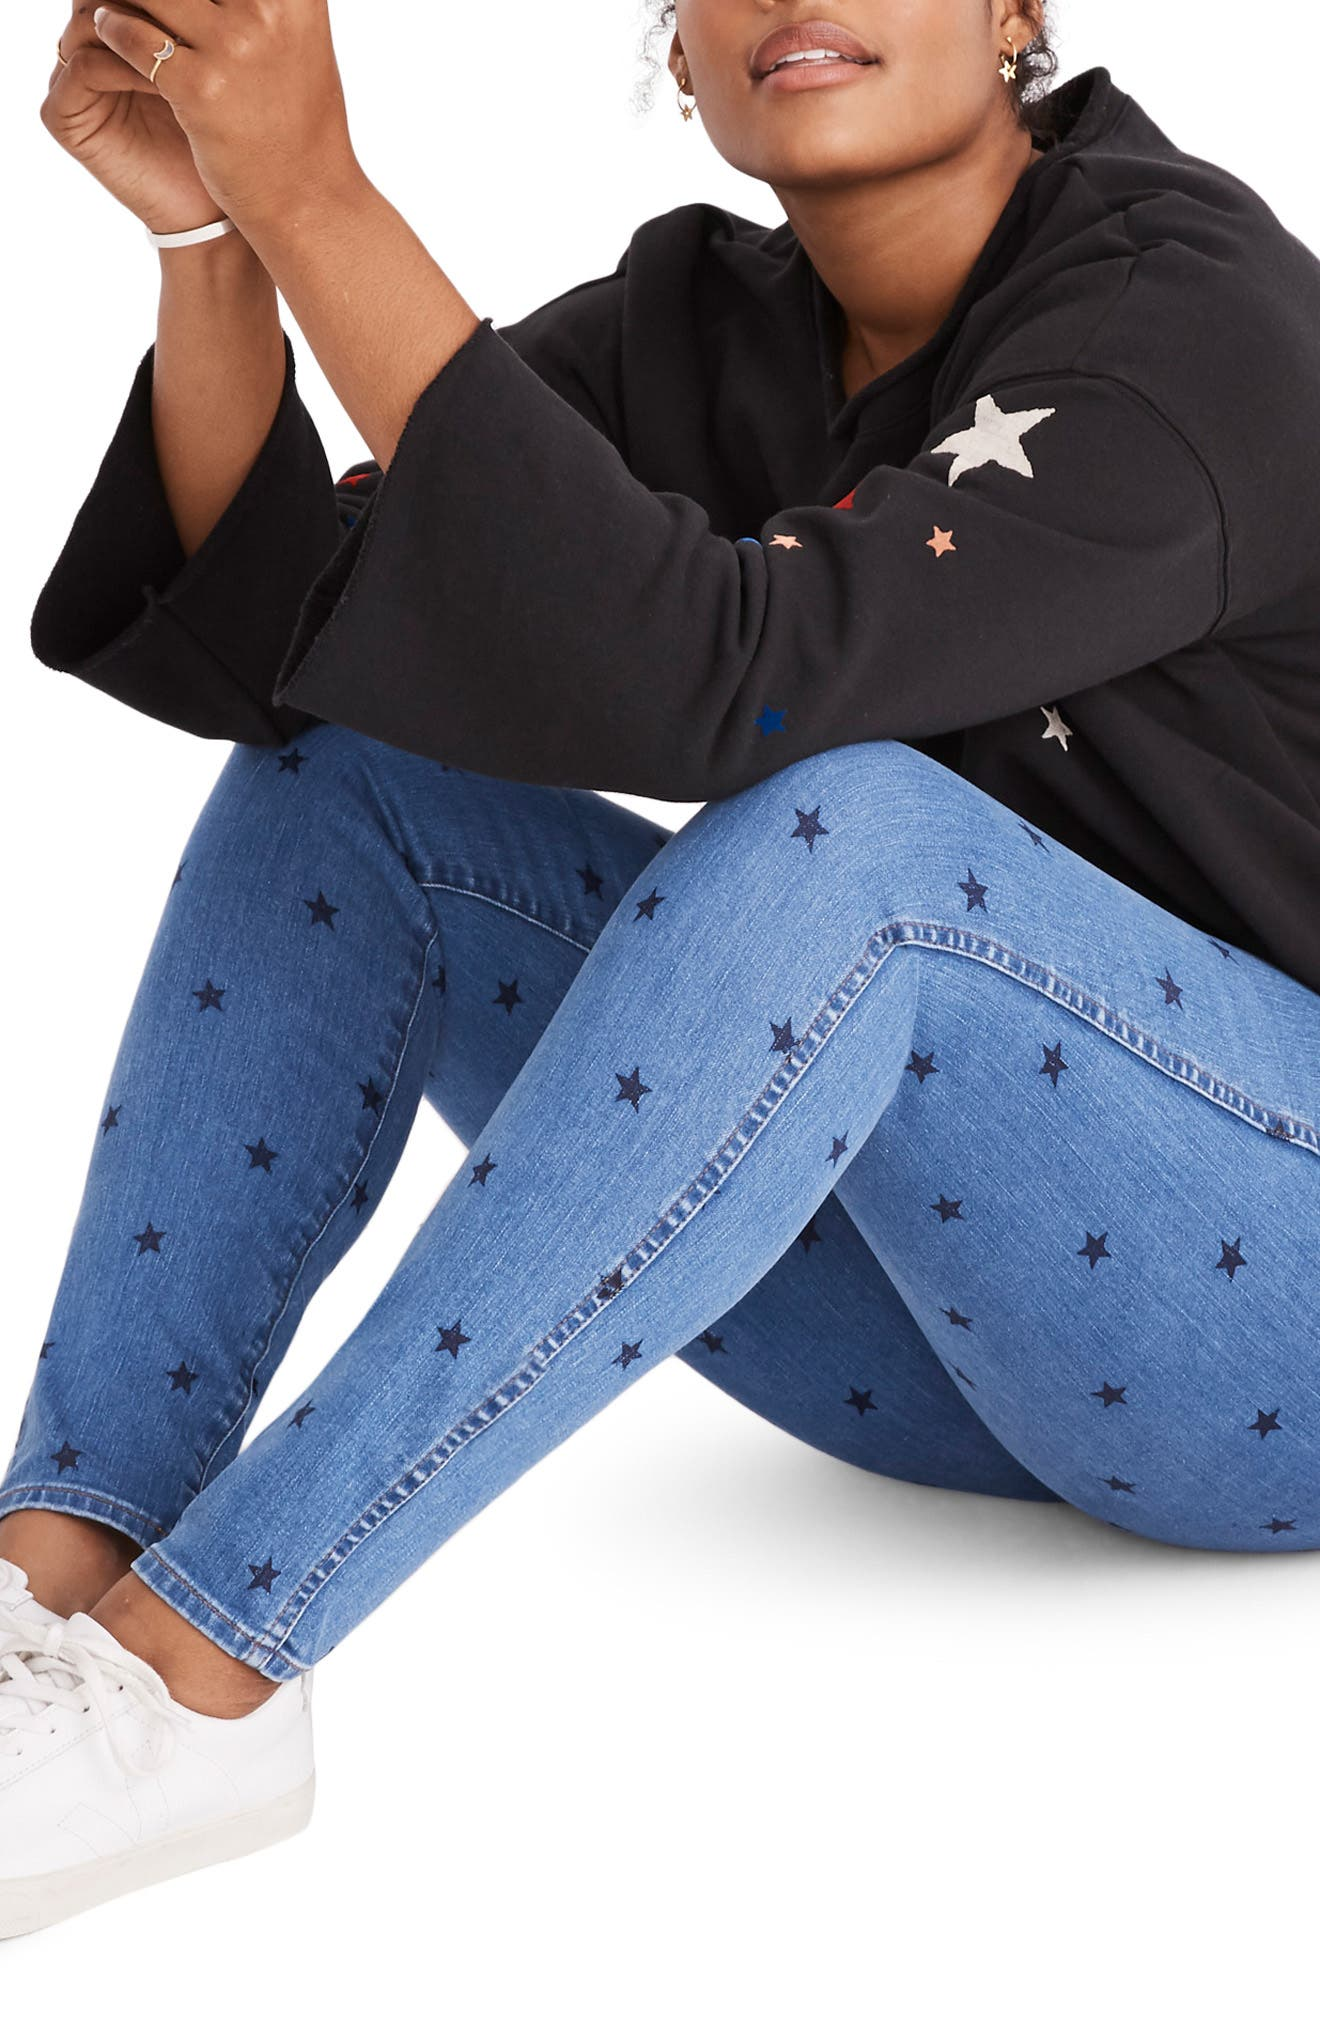 Starry Night Sweatshirt,                             Alternate thumbnail 7, color,                             CLASSIC BLACK